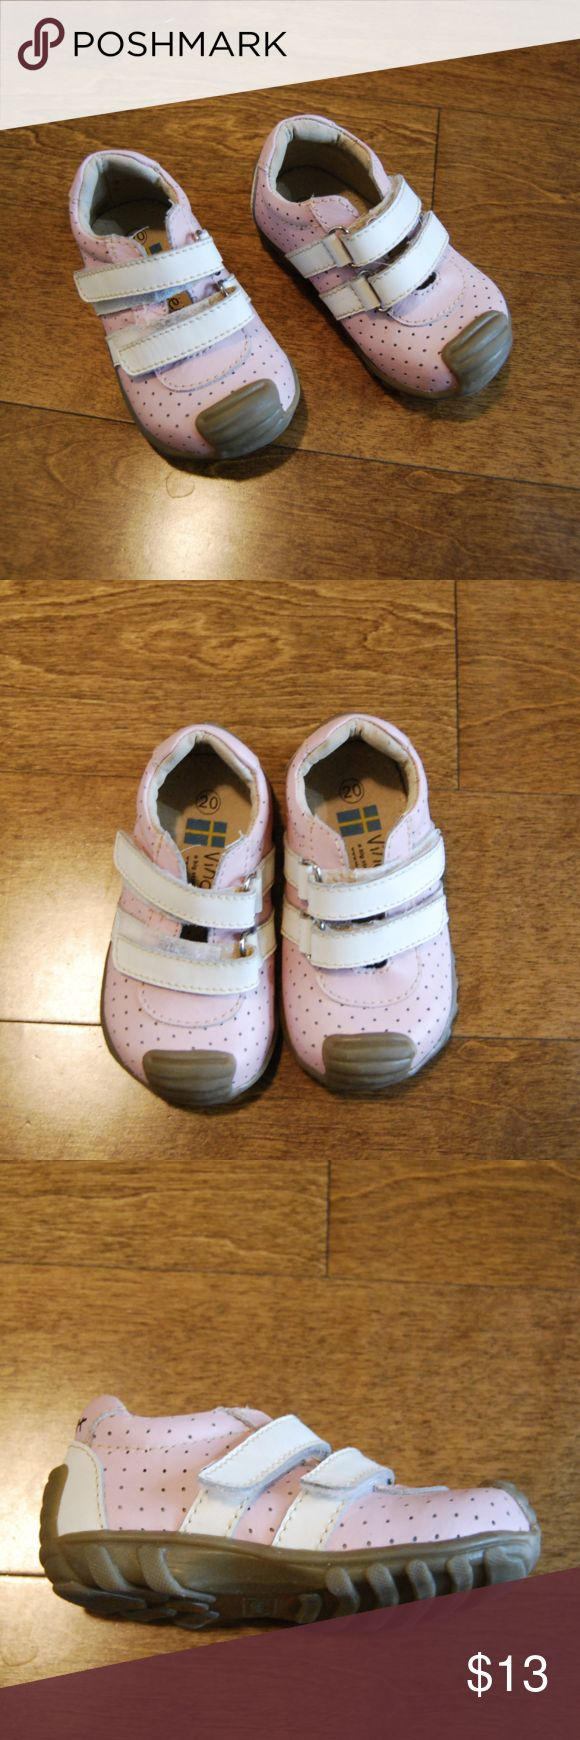 Vincent Pink/White Soccer Style Leather Shoes These imported Swedish shoe designed in soccer style have white Velcro straps and ready for play.  They have normal wear, and are in good condition.   They are size EU 20 Toddler which is the same as size US 5 Toddler. Vincent Shoes Sneakers